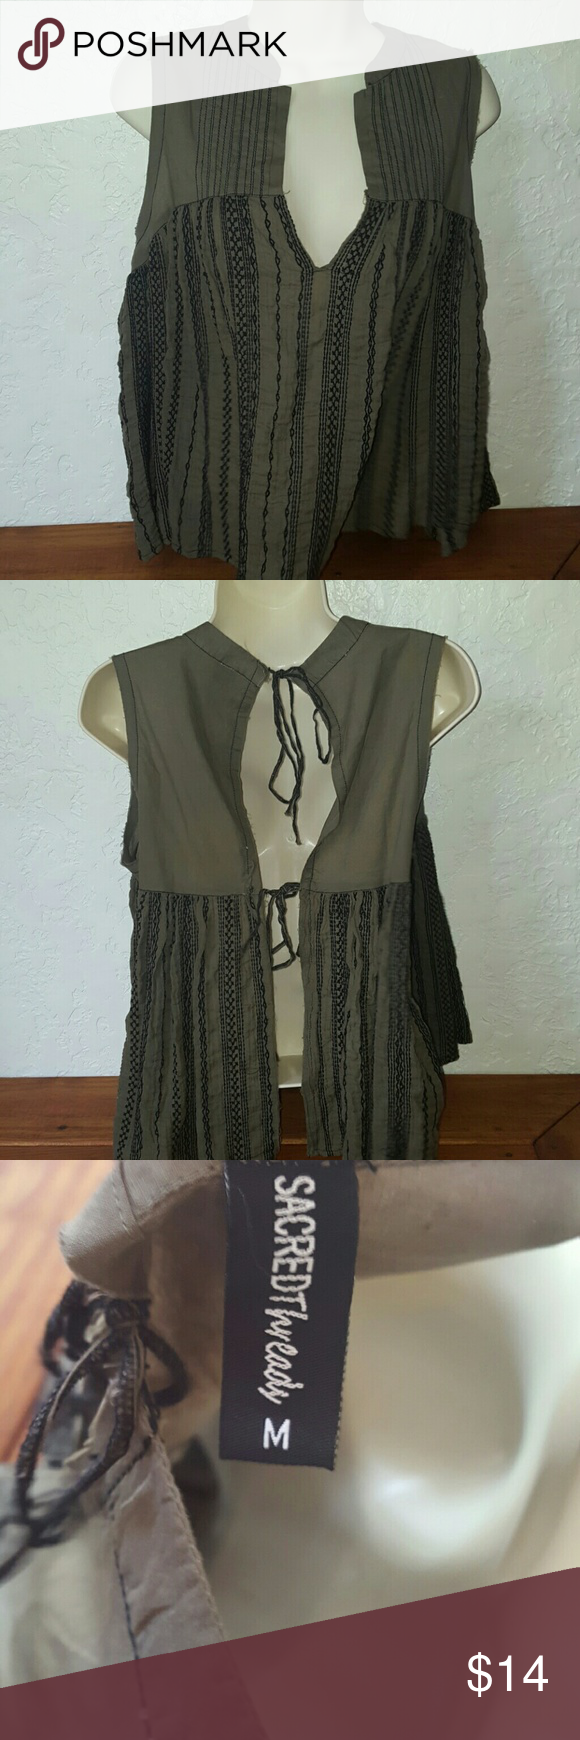 SACRED THREADS/ New without Tags  $14 Very beautiful/ open back/ never worn/ sage green/ like new/ Reg $45 Sacred Threads  Tops Blouses